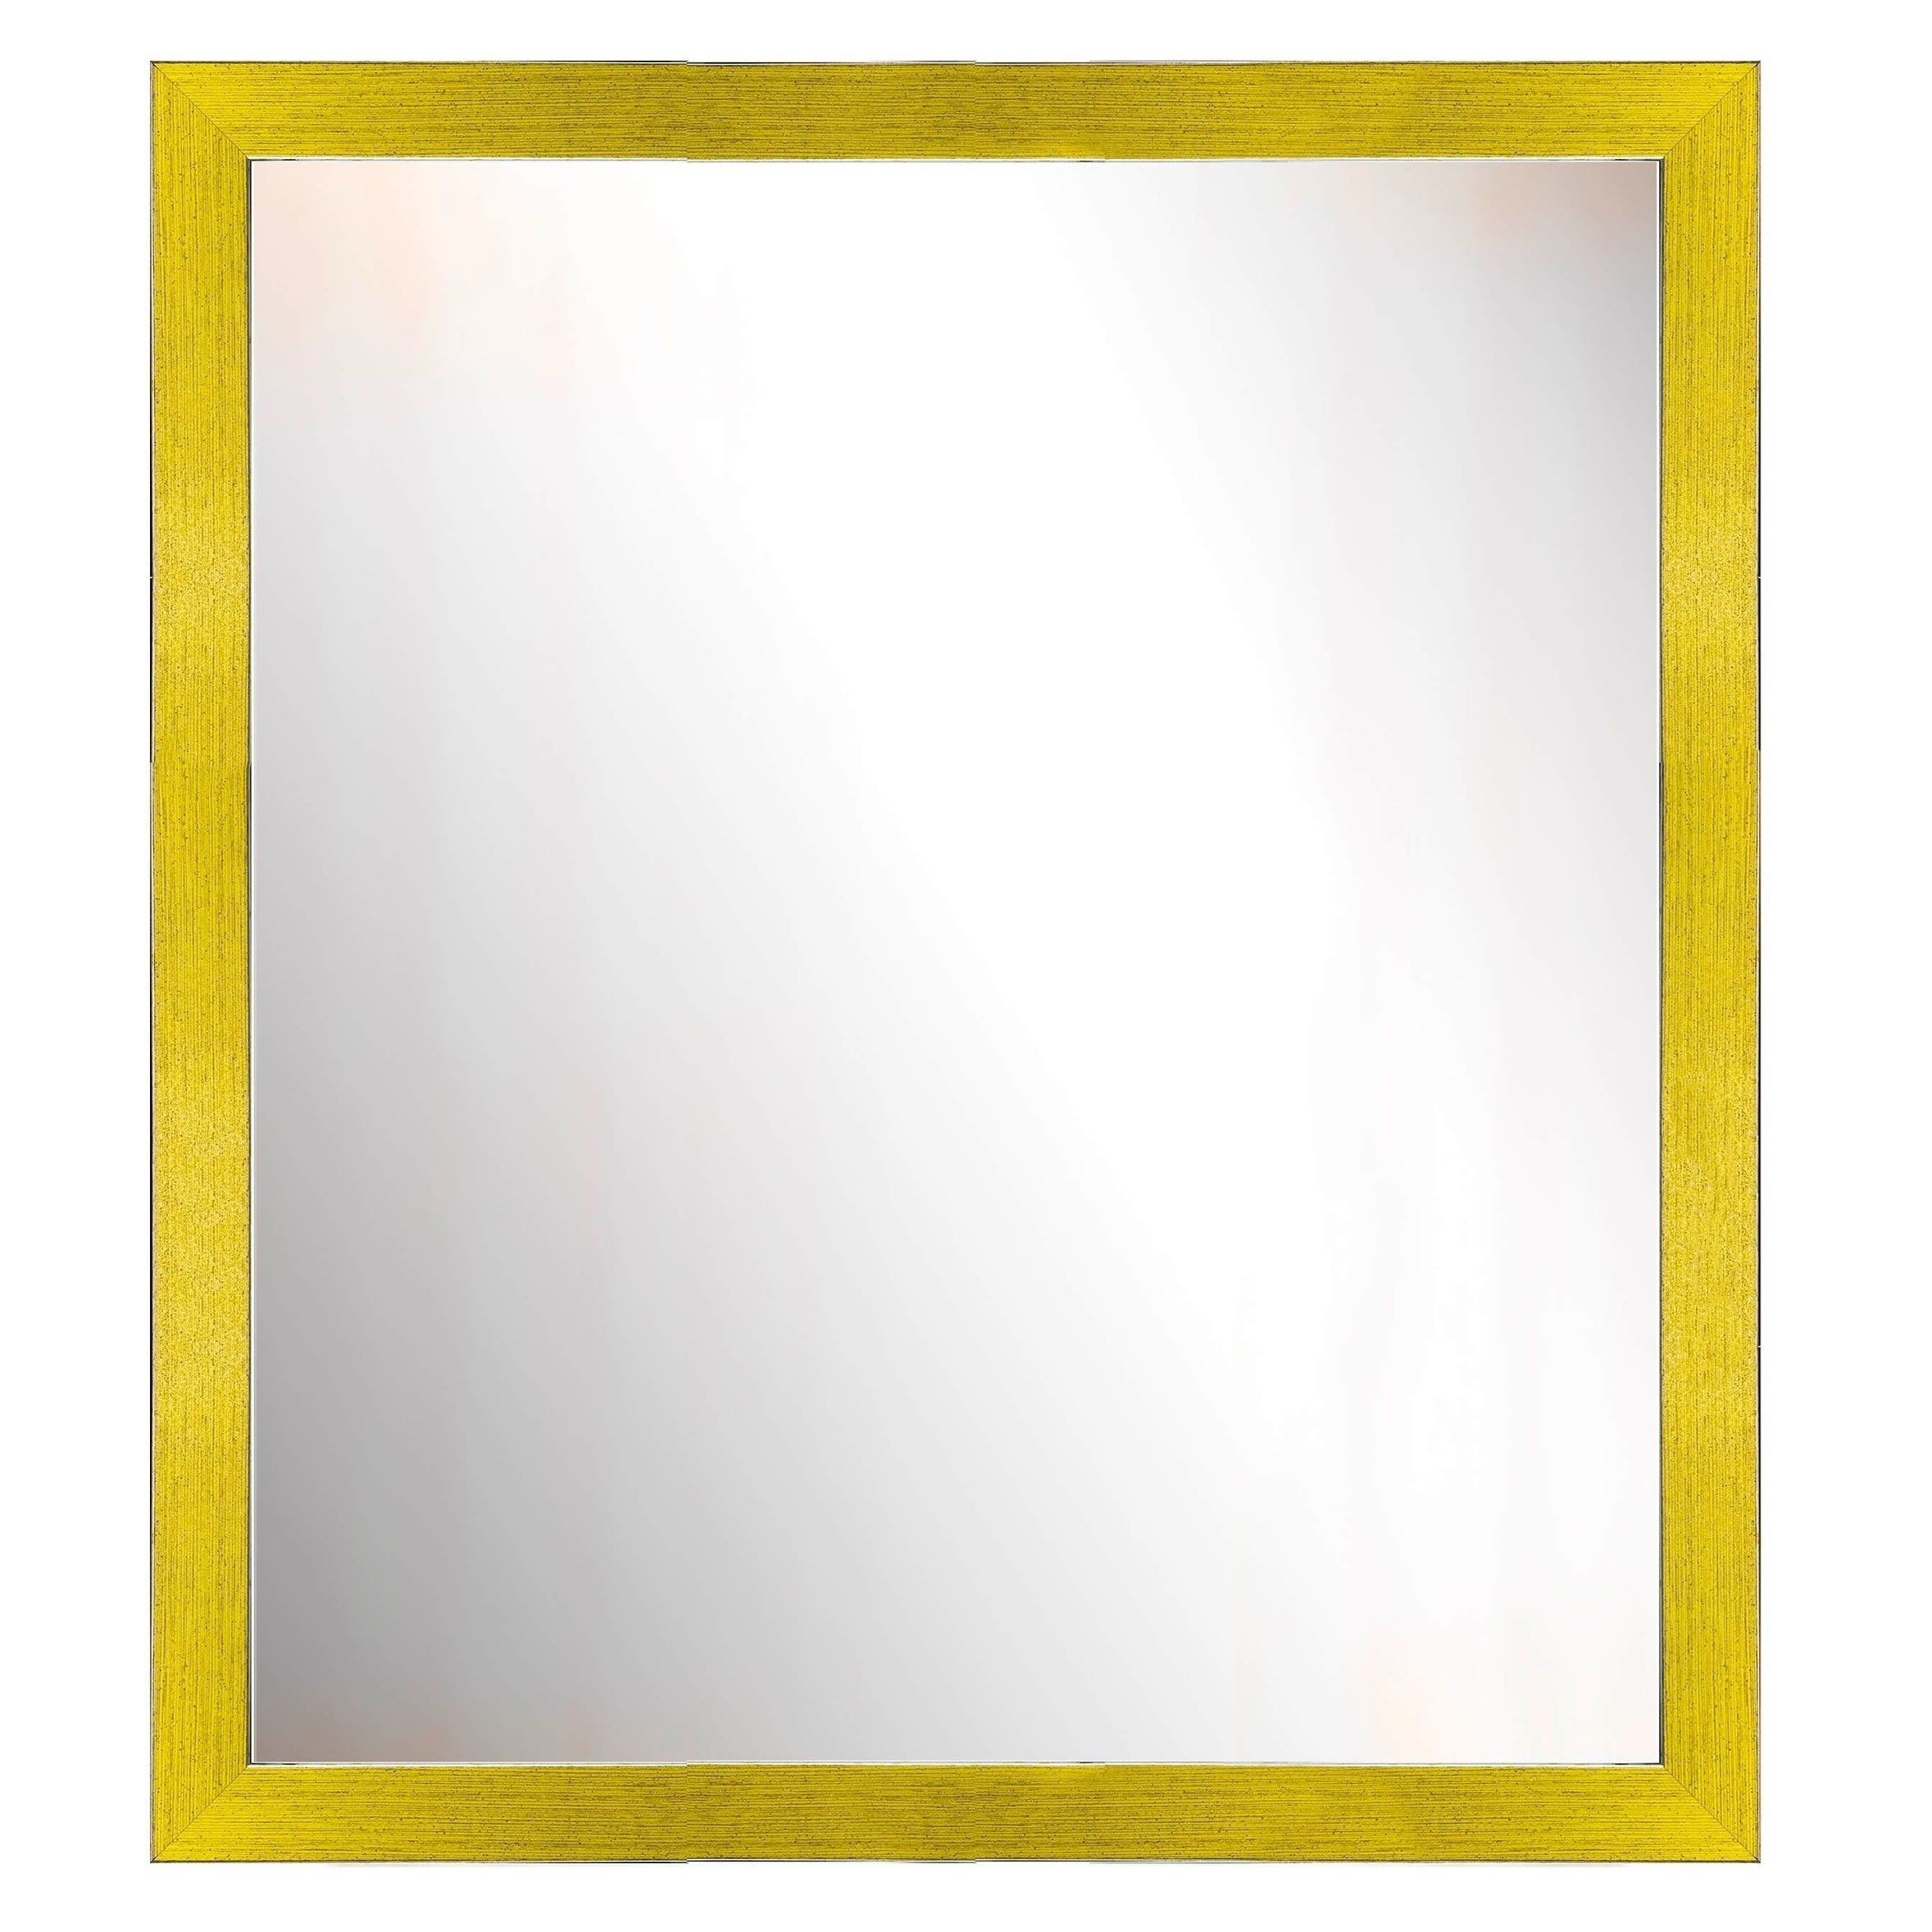 Shop Yellow Two-toned Silver Speckled Framed Mirror - On Sale - Free ...